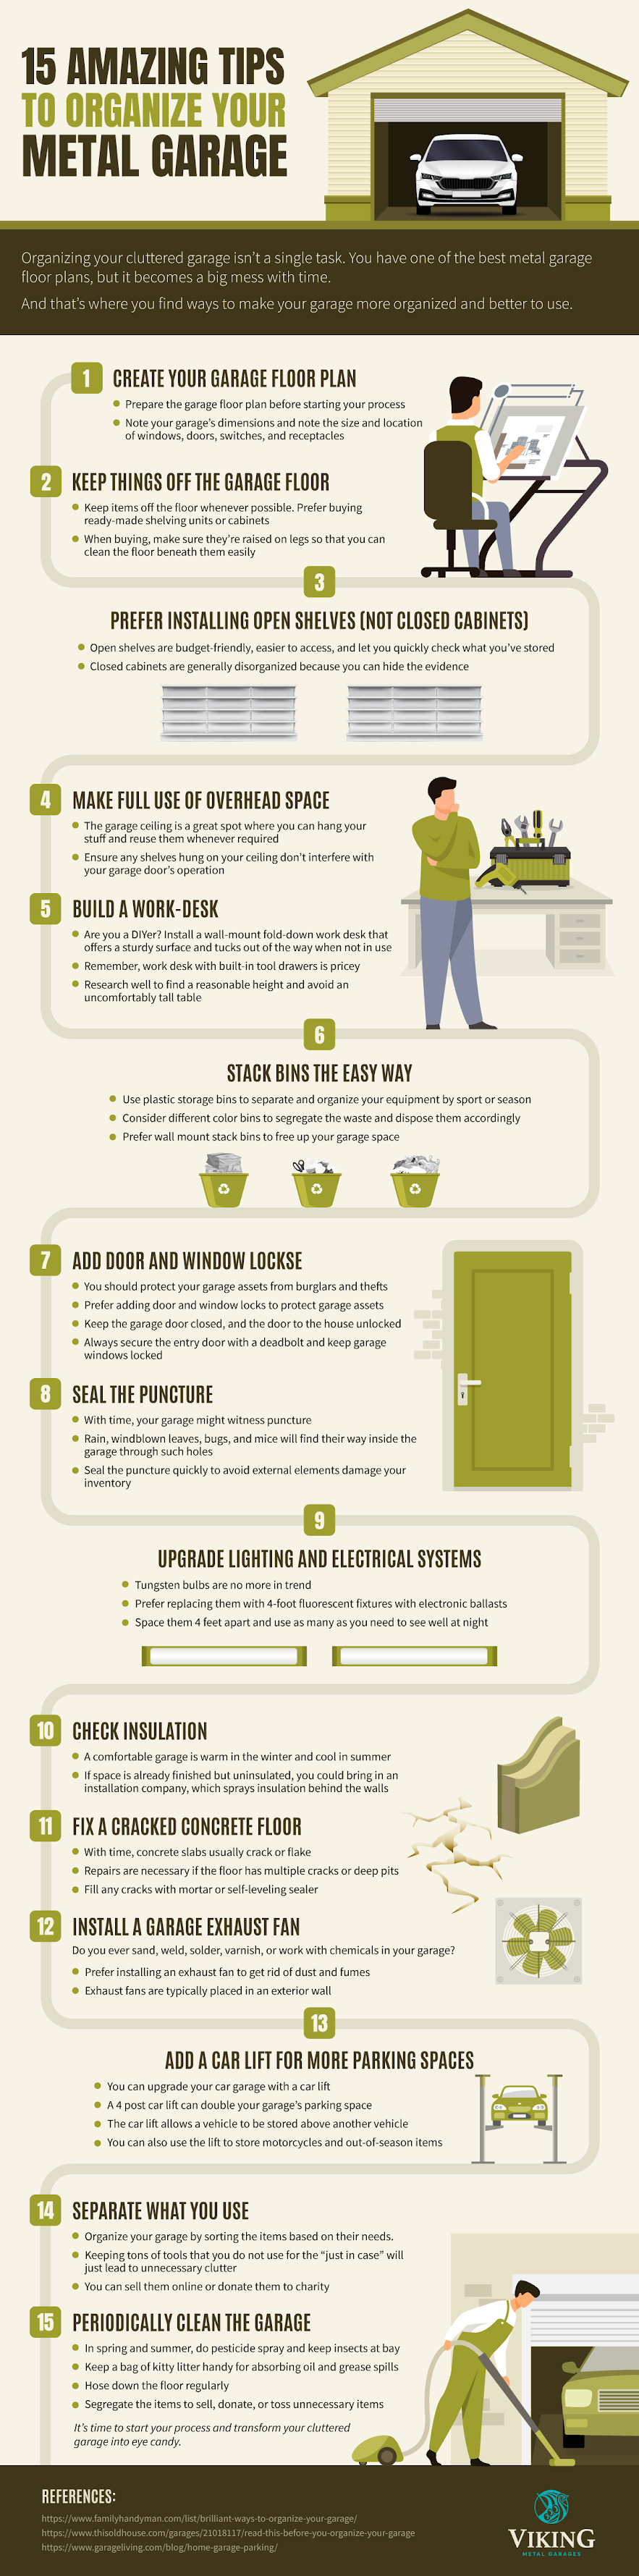 15 Amazing Tips to Organize Your Metal Garage #infographic #Home #infographics